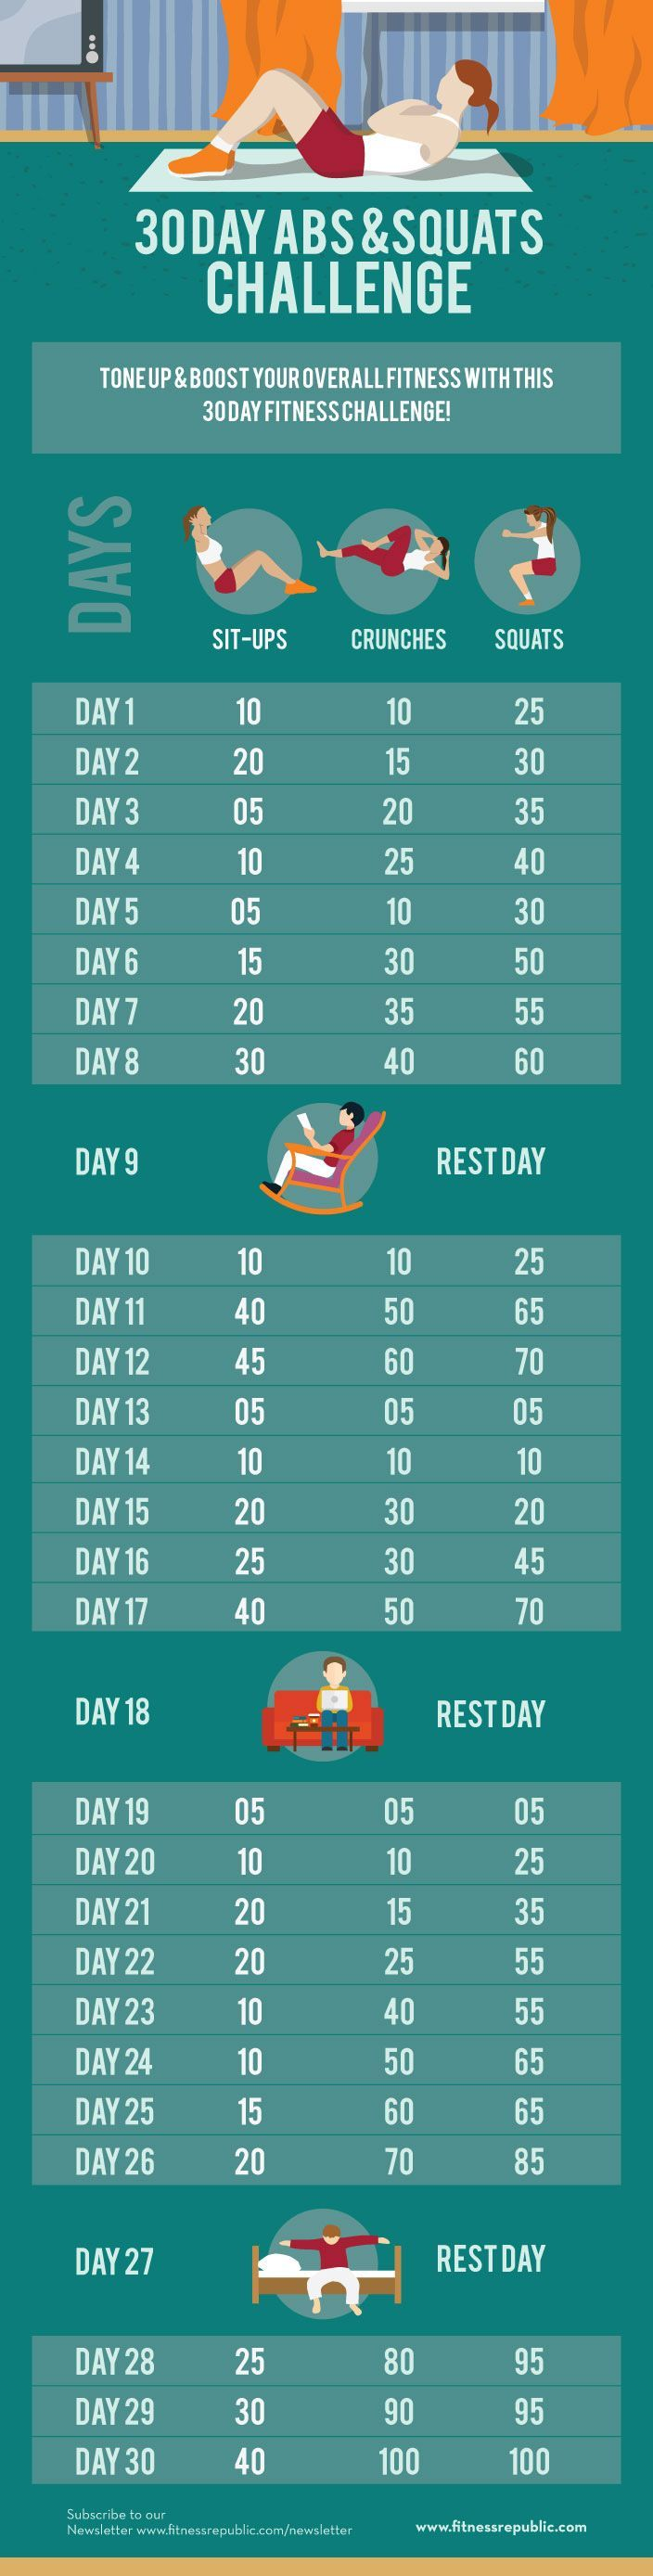 30 Day Abs and Squats Challenge: It's the 1st of the month and it's go time! Ready for this 30 day challenge?!